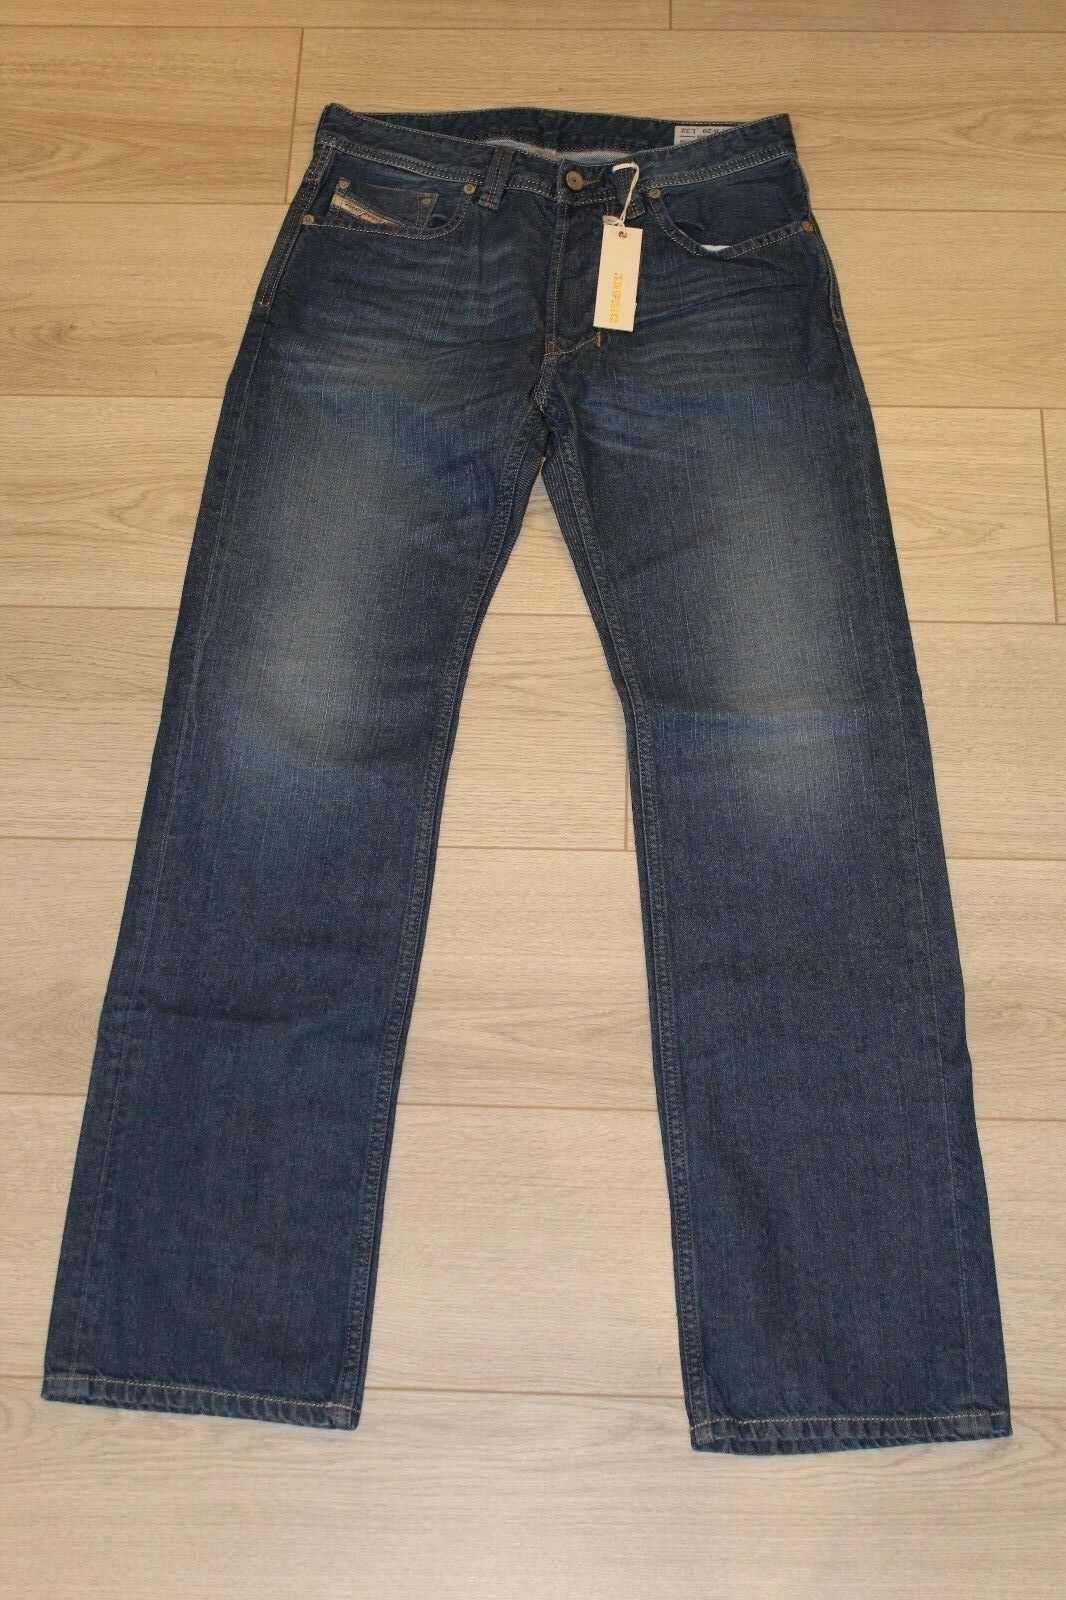 MEN'S DIESEL LARKEE WASH 0RK8M Faded Regular Straight Jeans Denim W29 L32